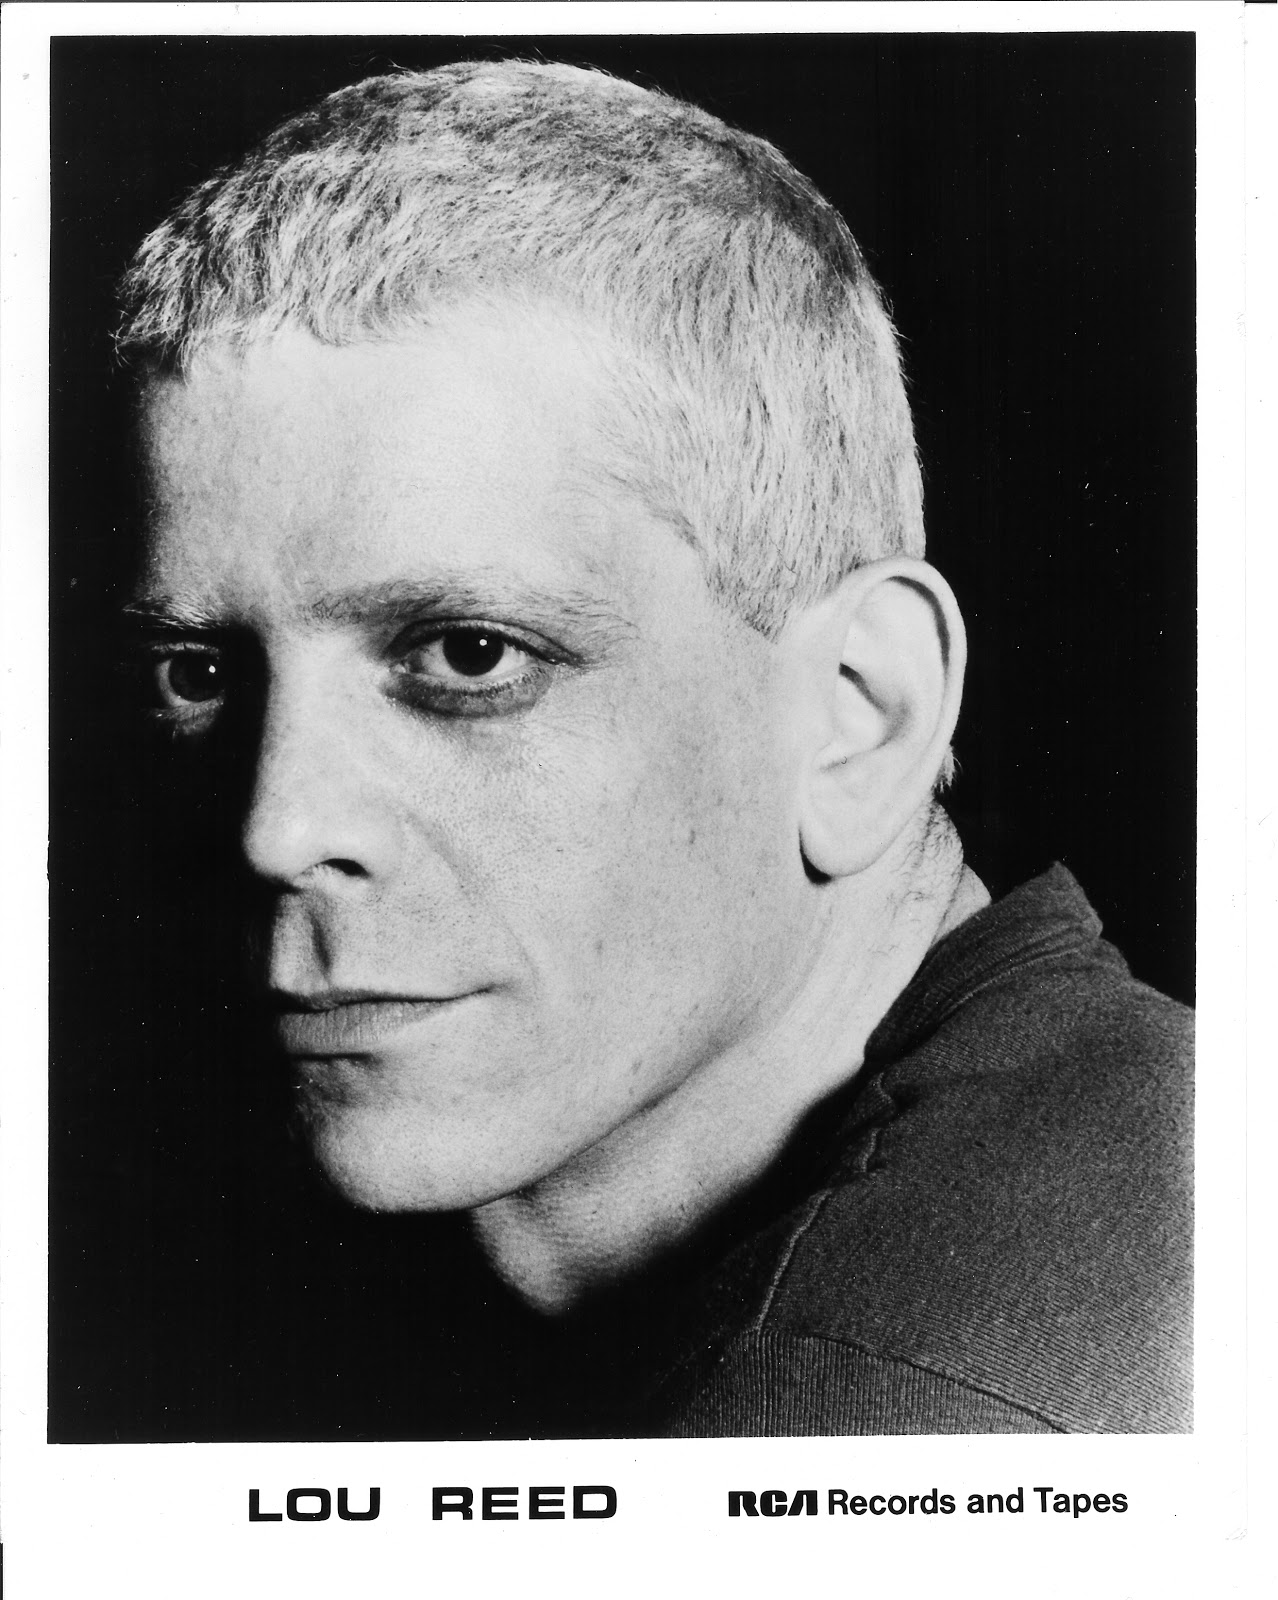 Lou Reed - AnthroScape